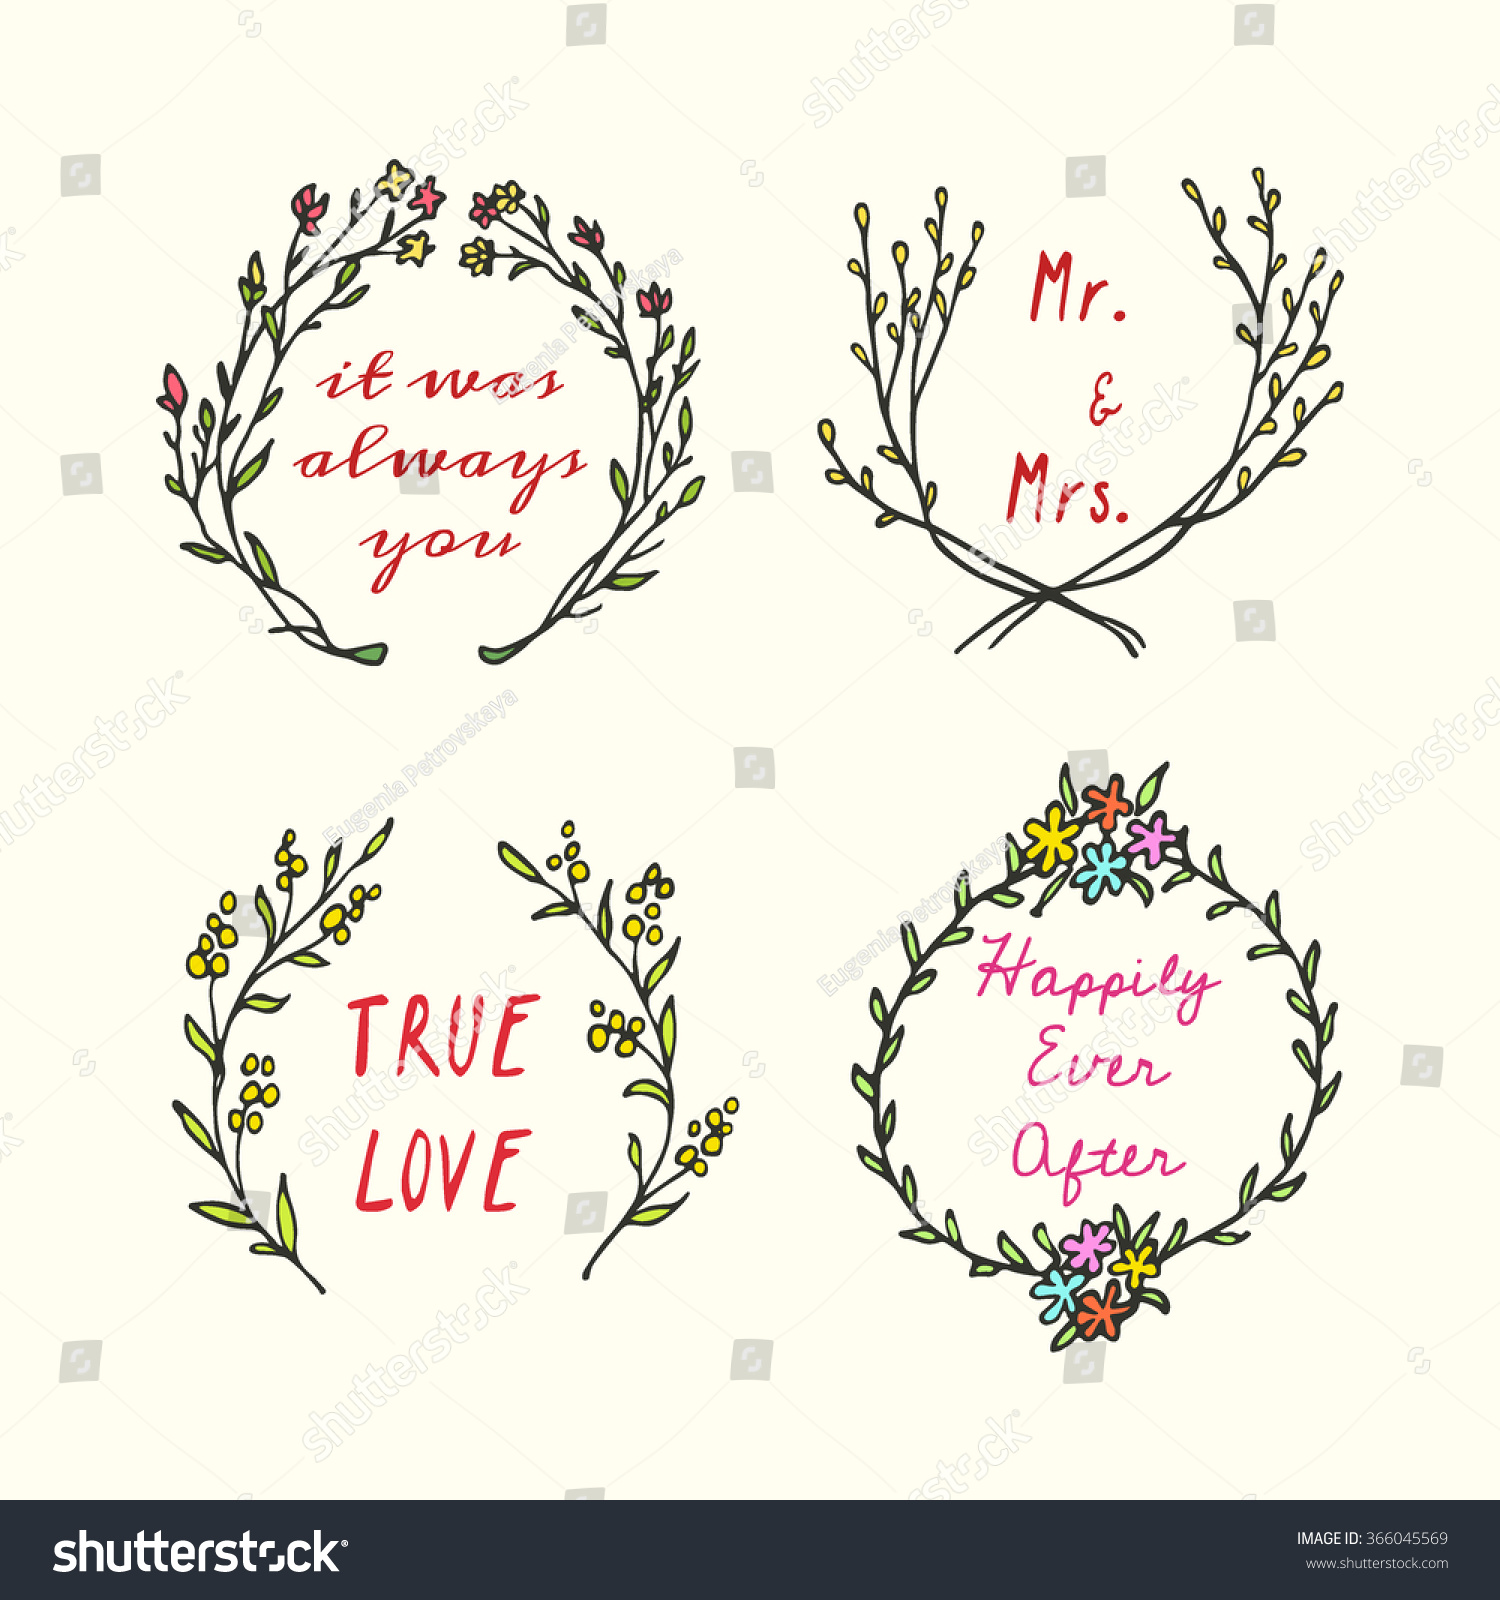 Vector Wedding Invitation Graphics Hand Drawn Stock Vector ...